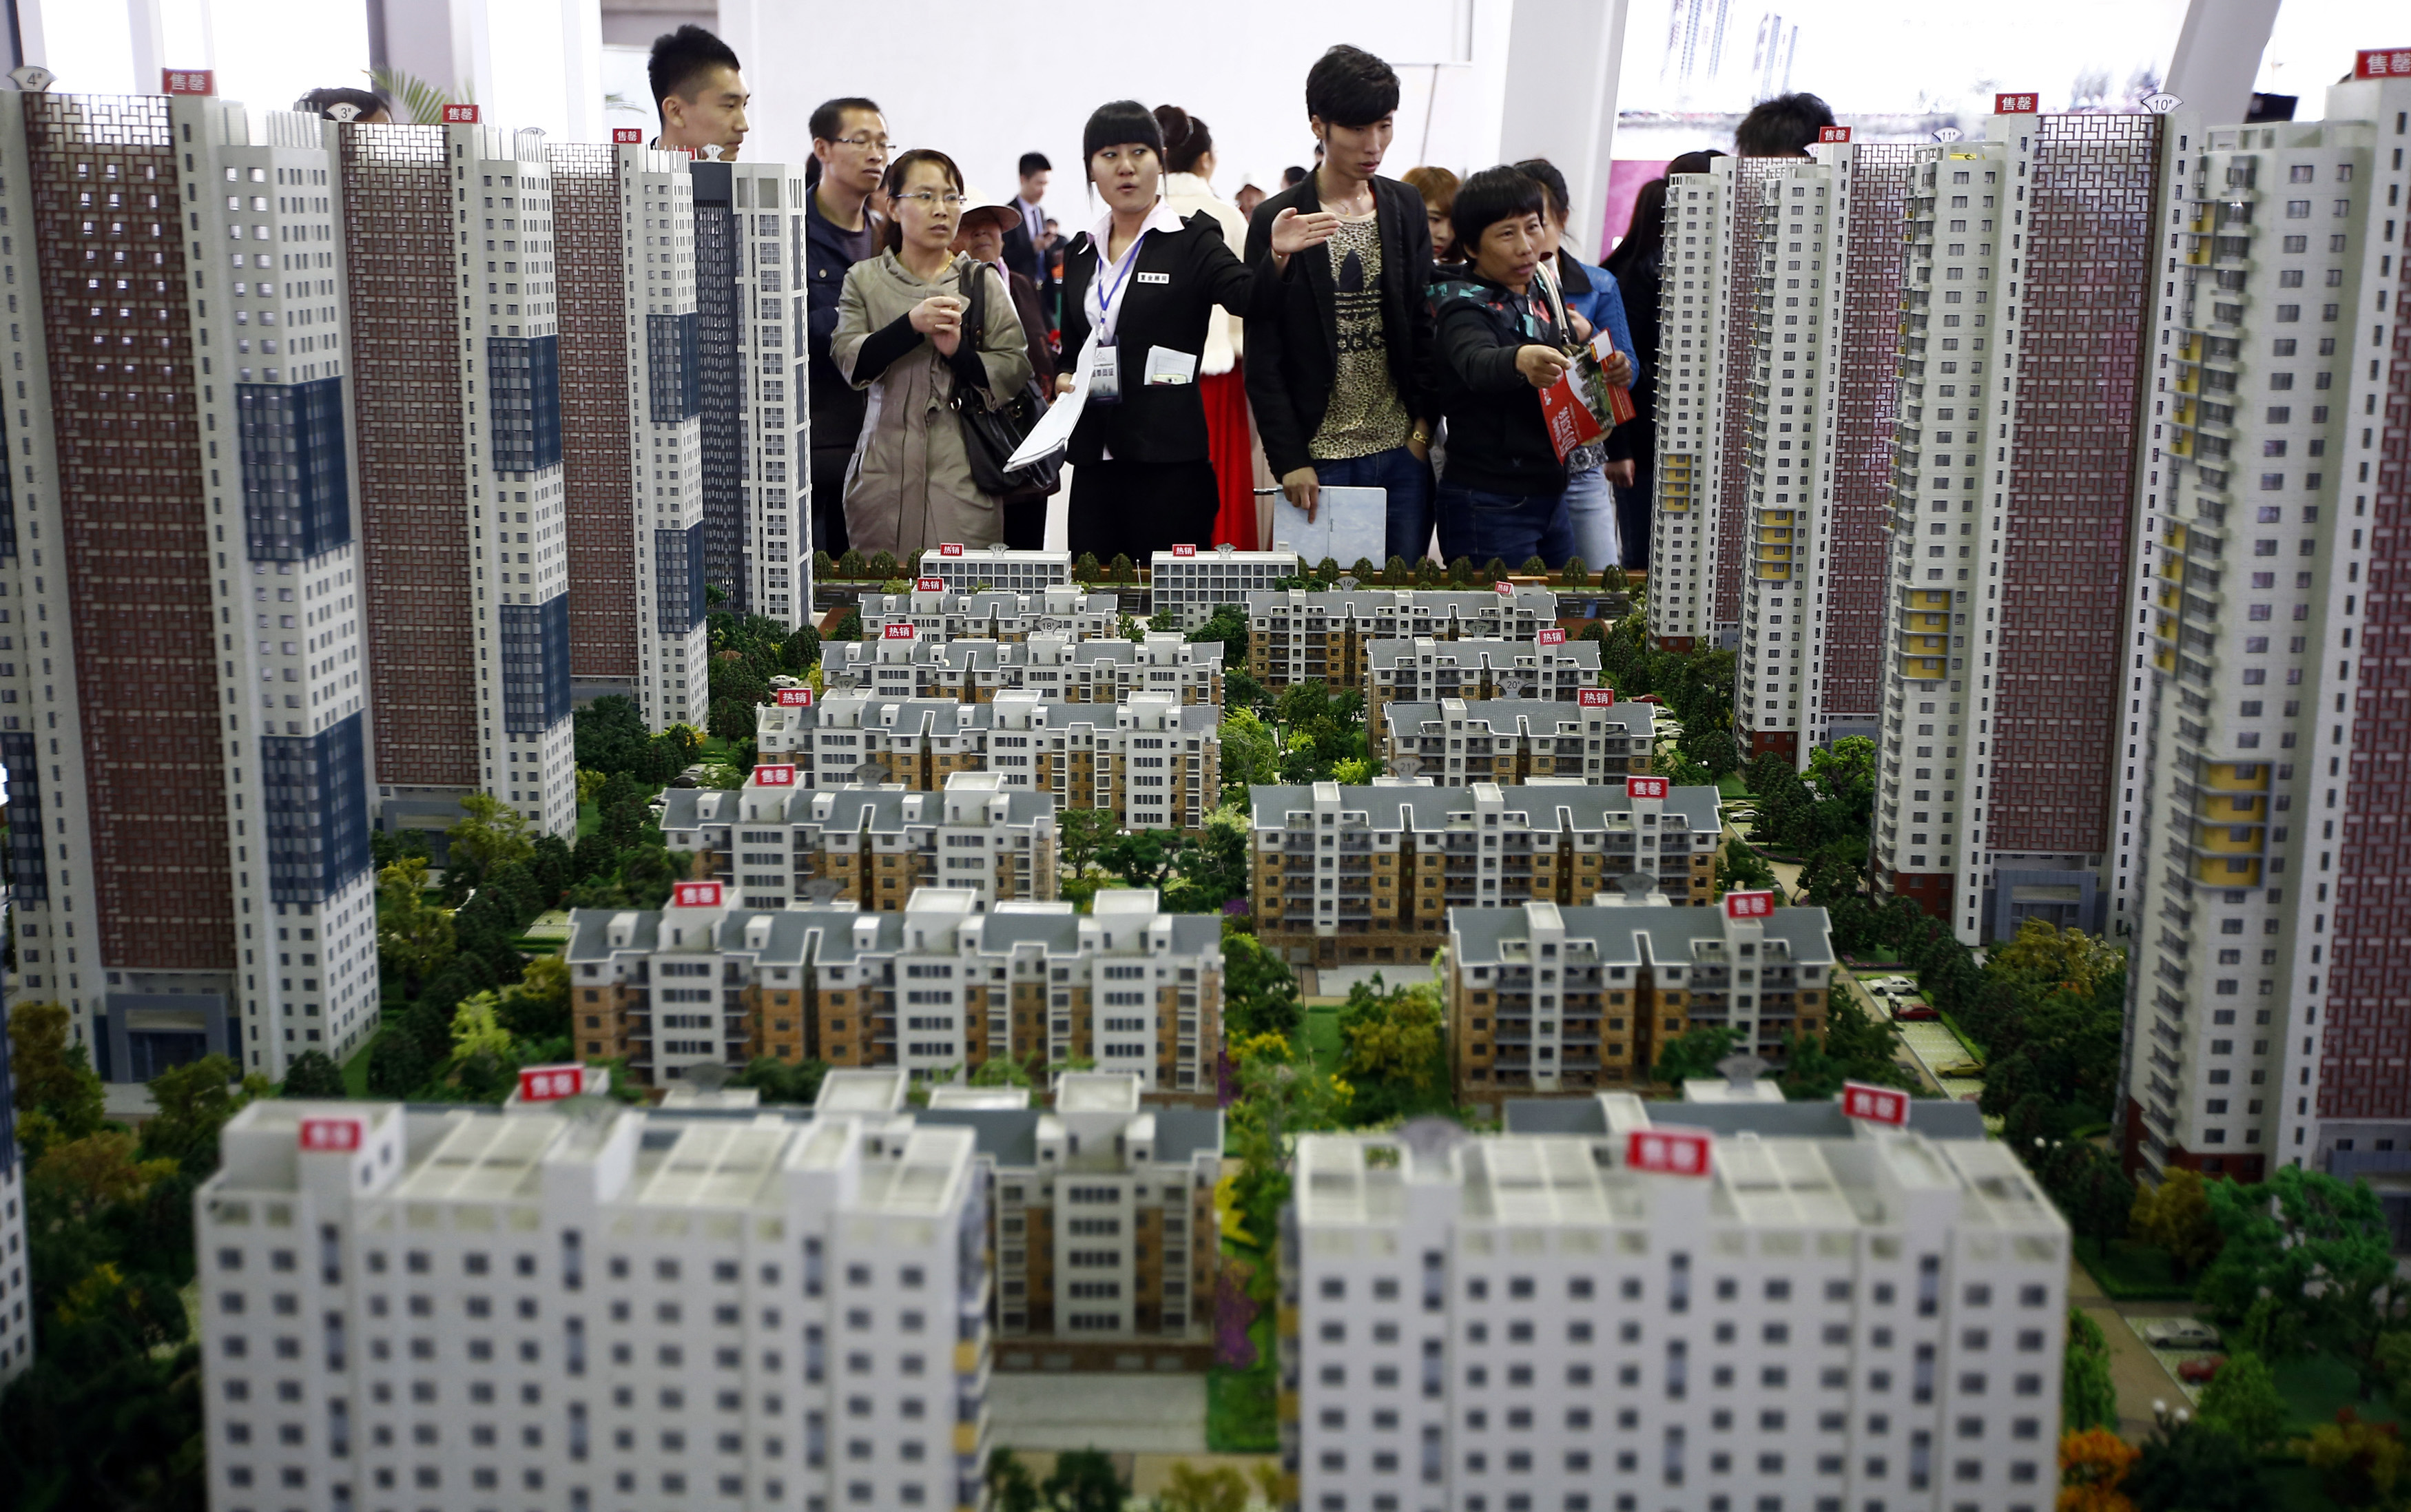 A sales assistant talks to visitors in front of models of apartments at a real estate exhibition in Shenyang, Liaoning province April 17, 2014.